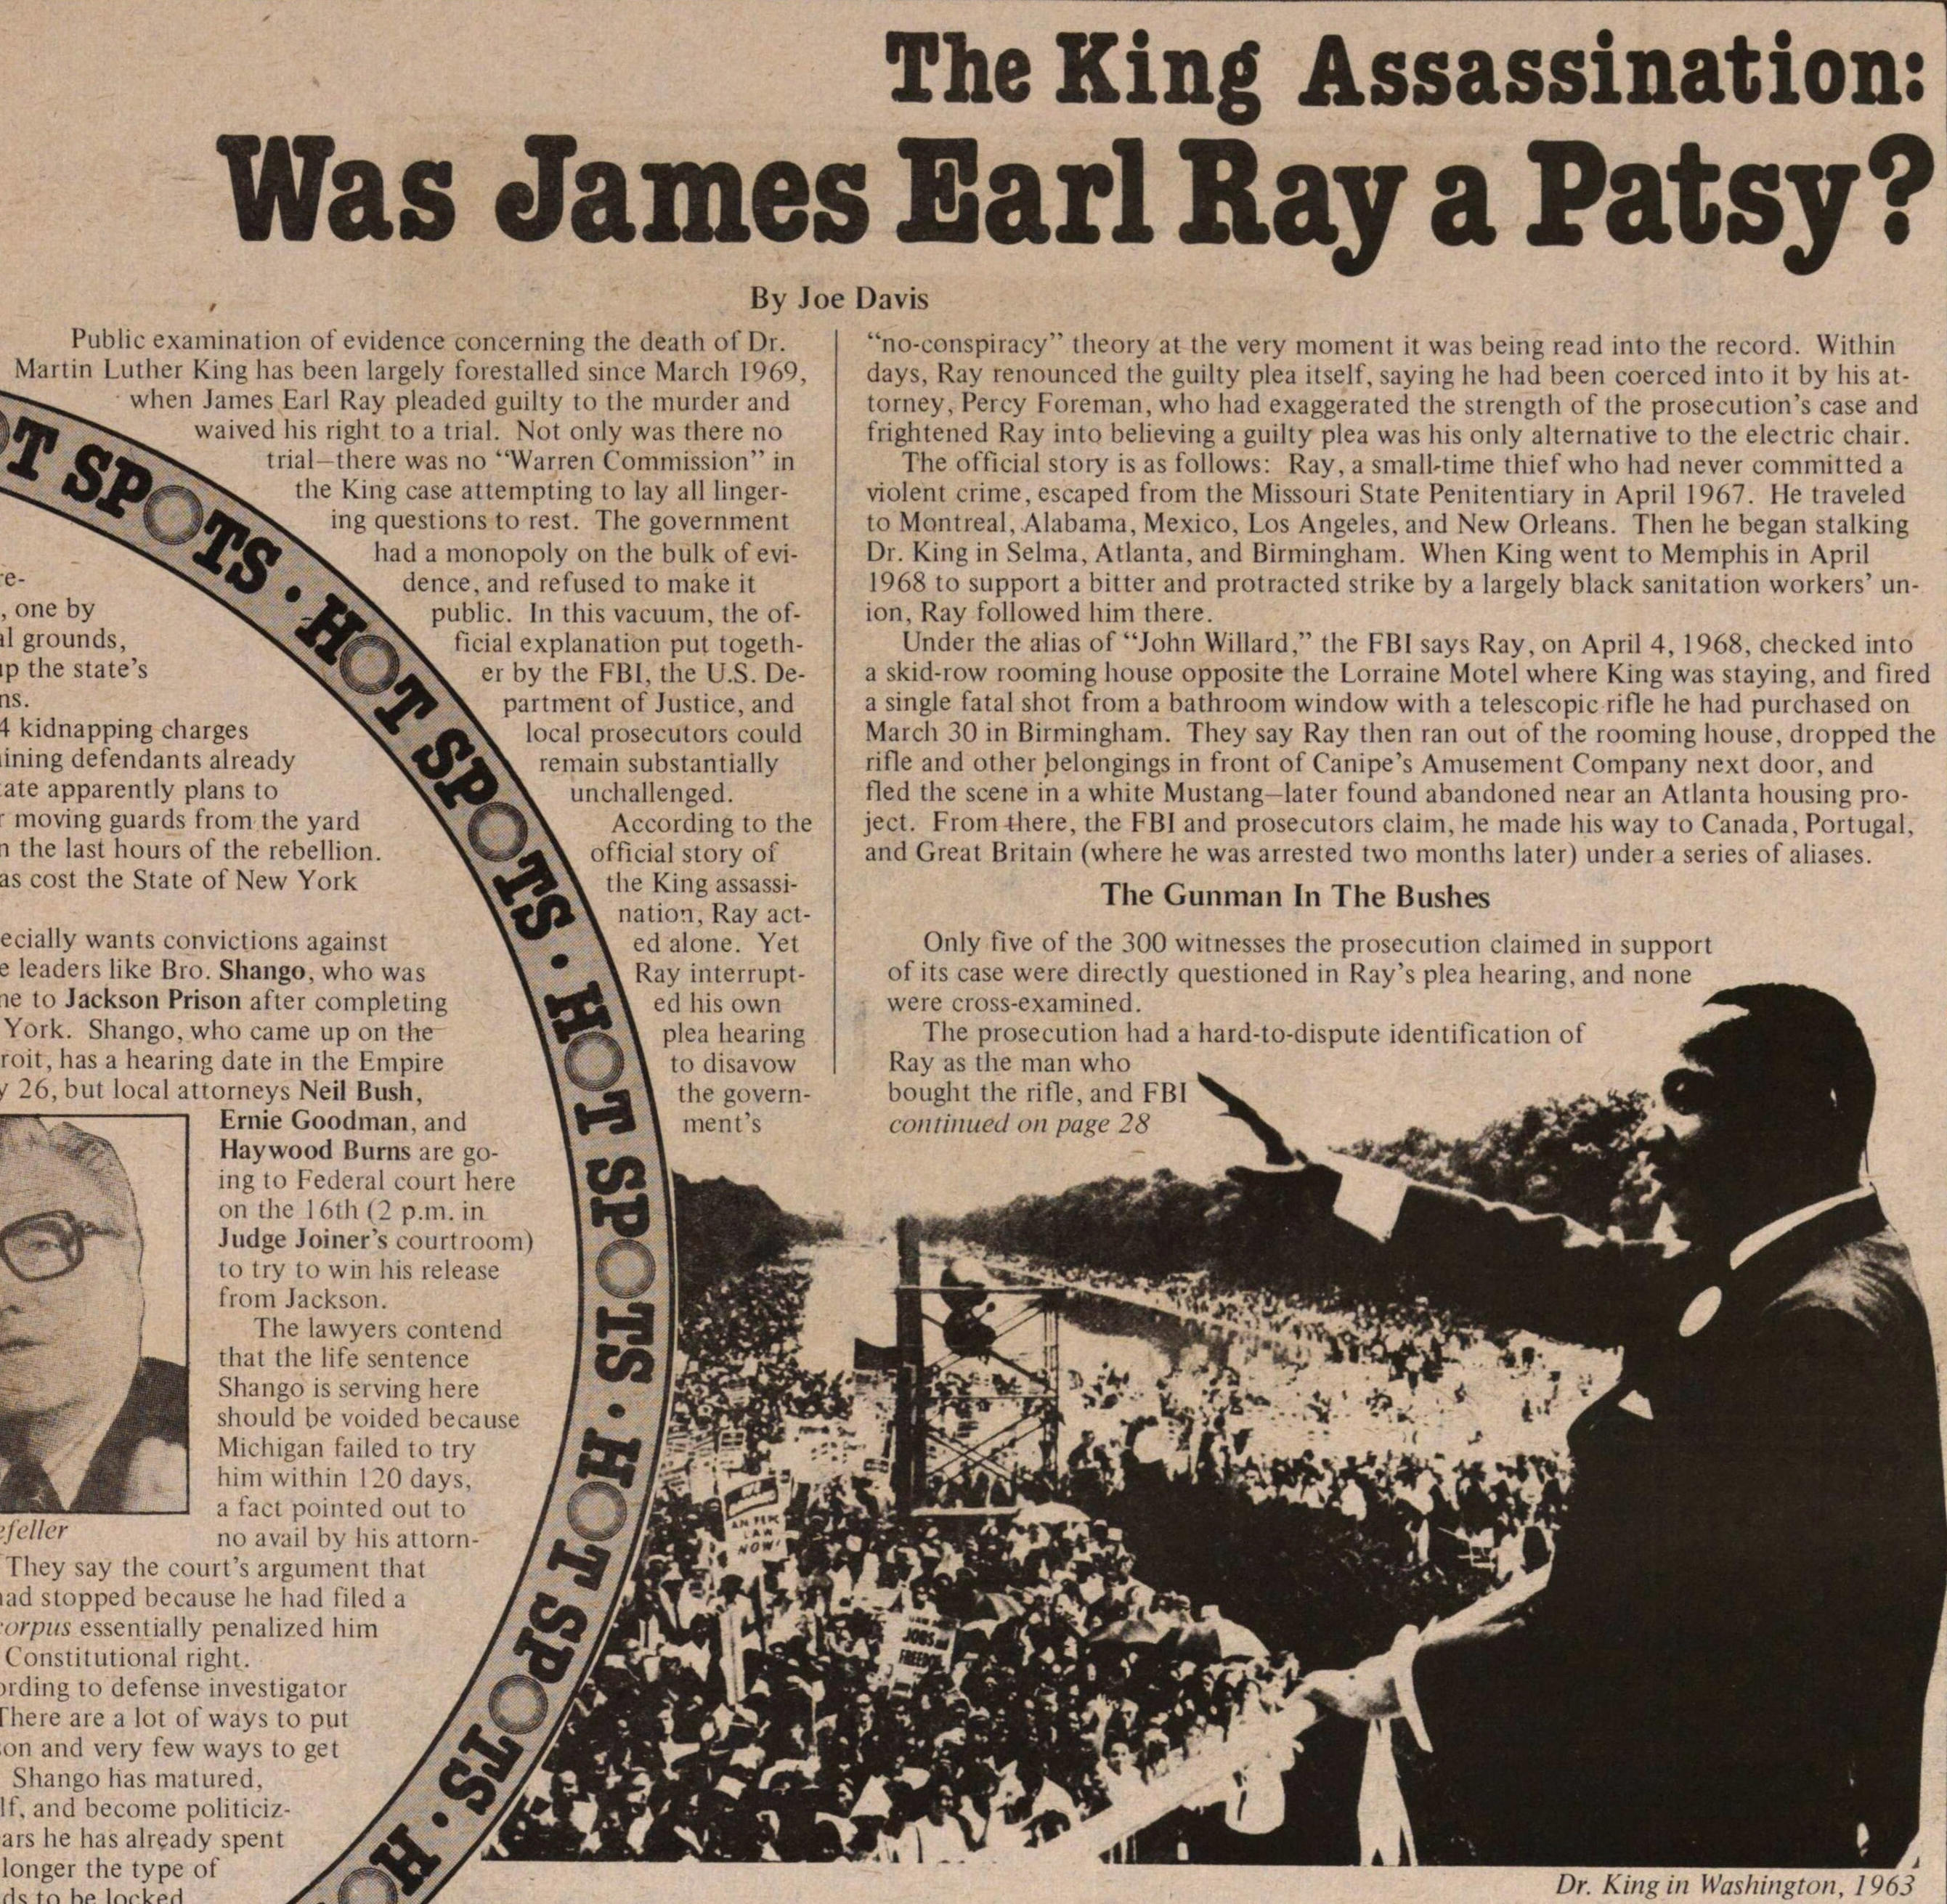 The King Assassination: Was James Earl Ray A Patsy? image